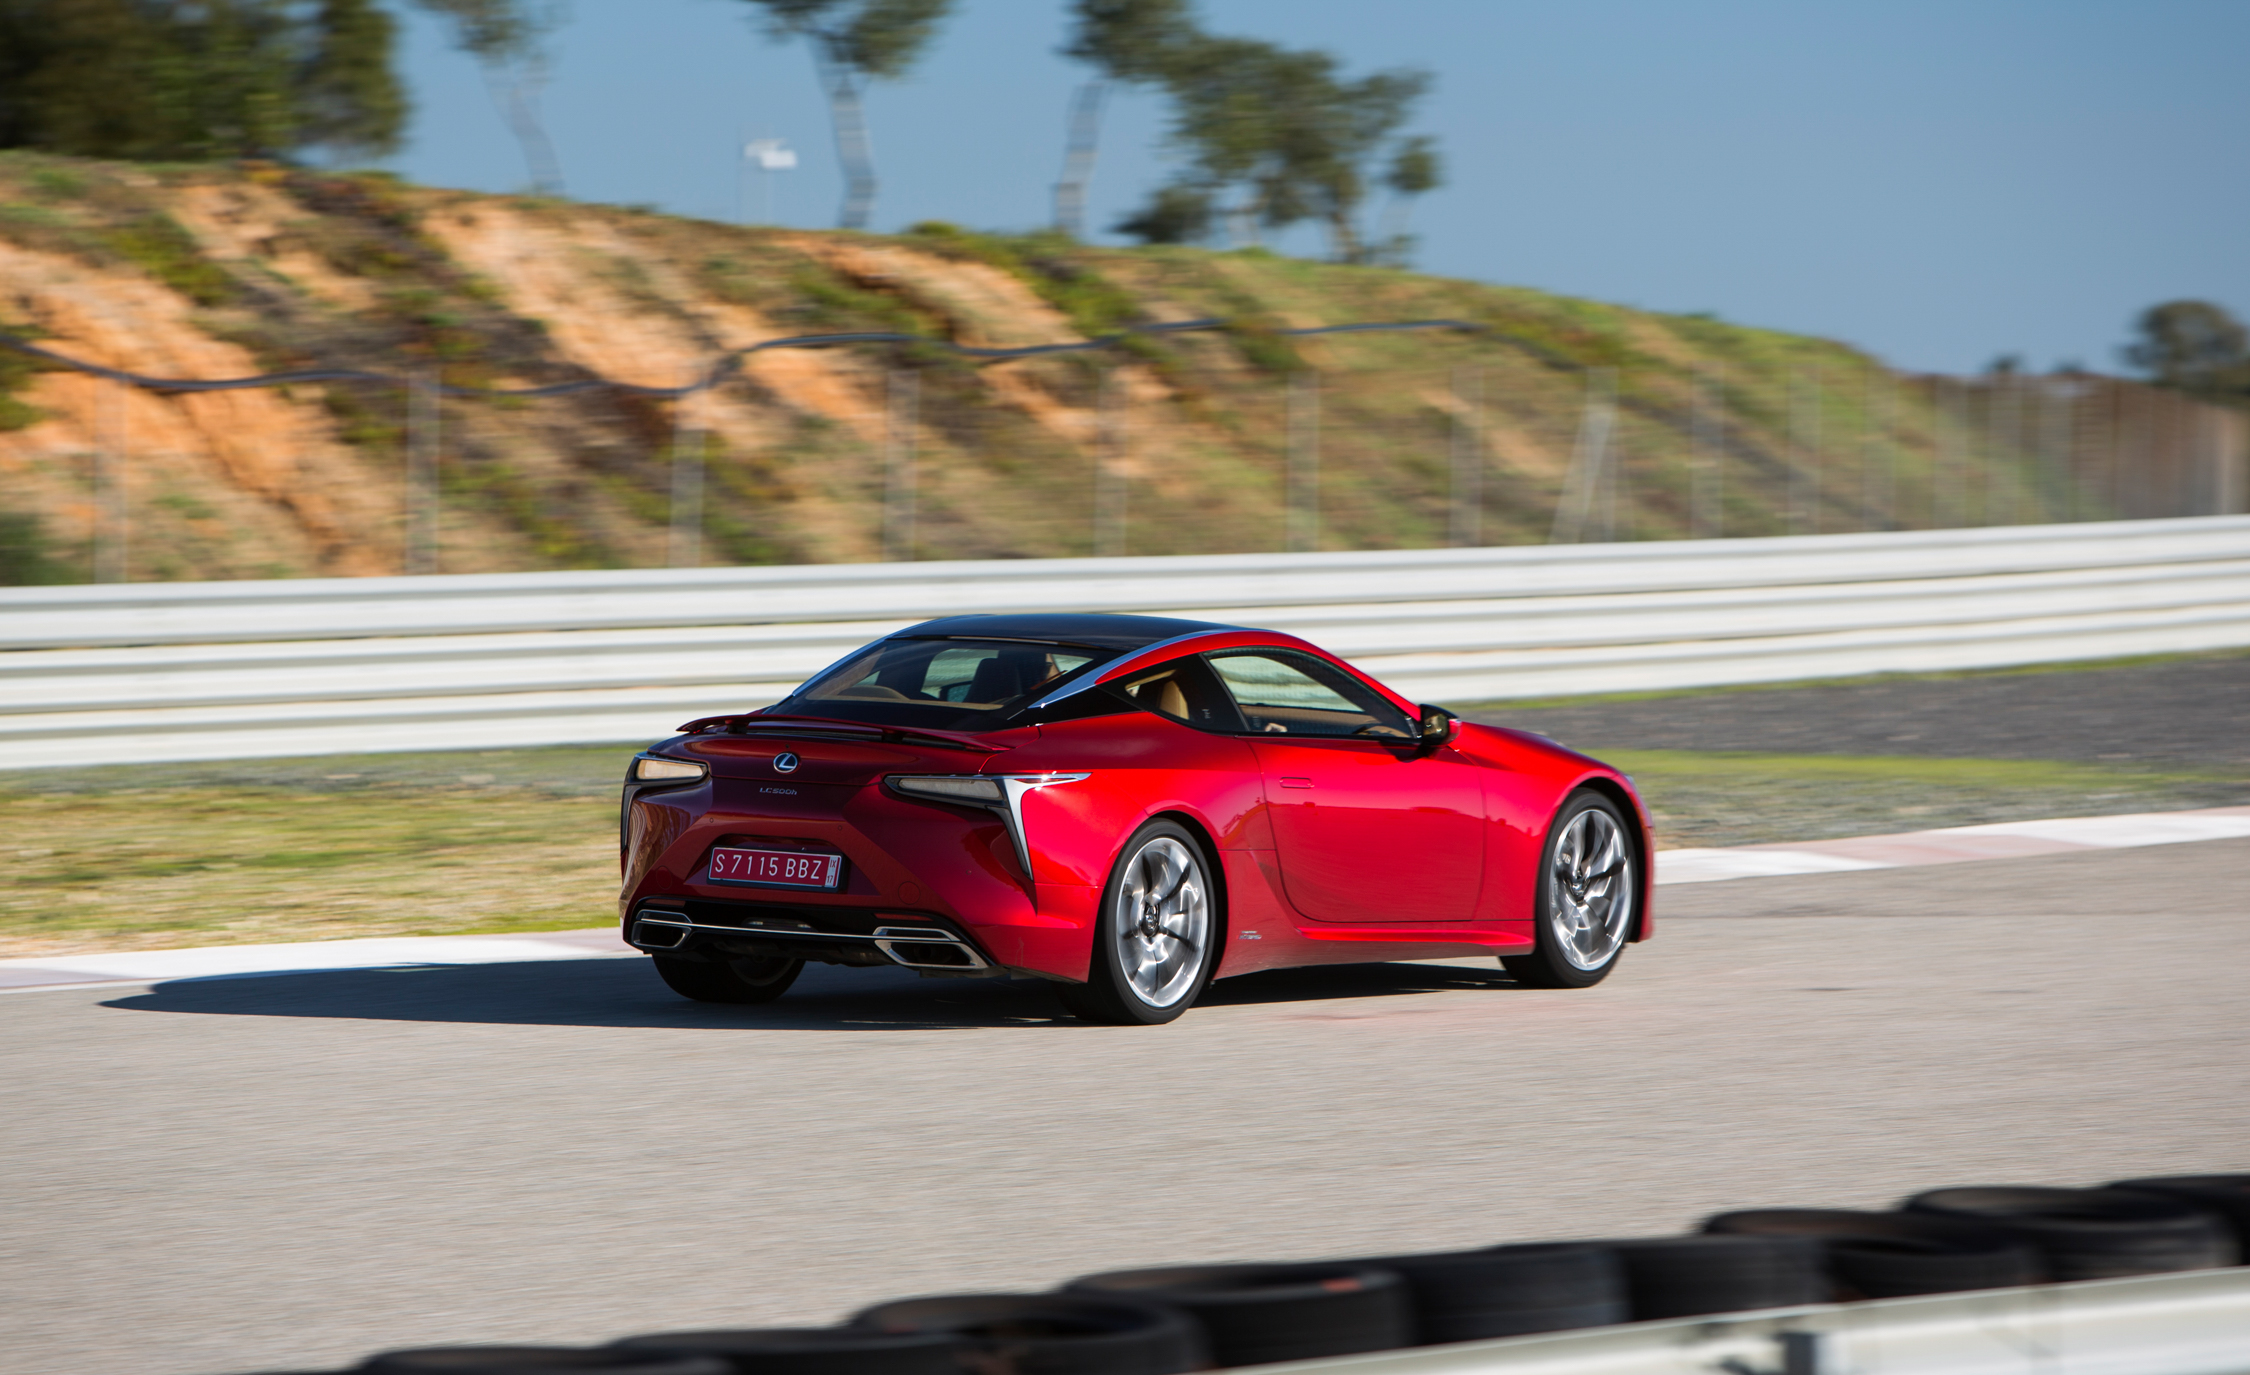 2018 Lexus Lc 500 Red Test Drive Rear And Side View (Photo 24 of 84)